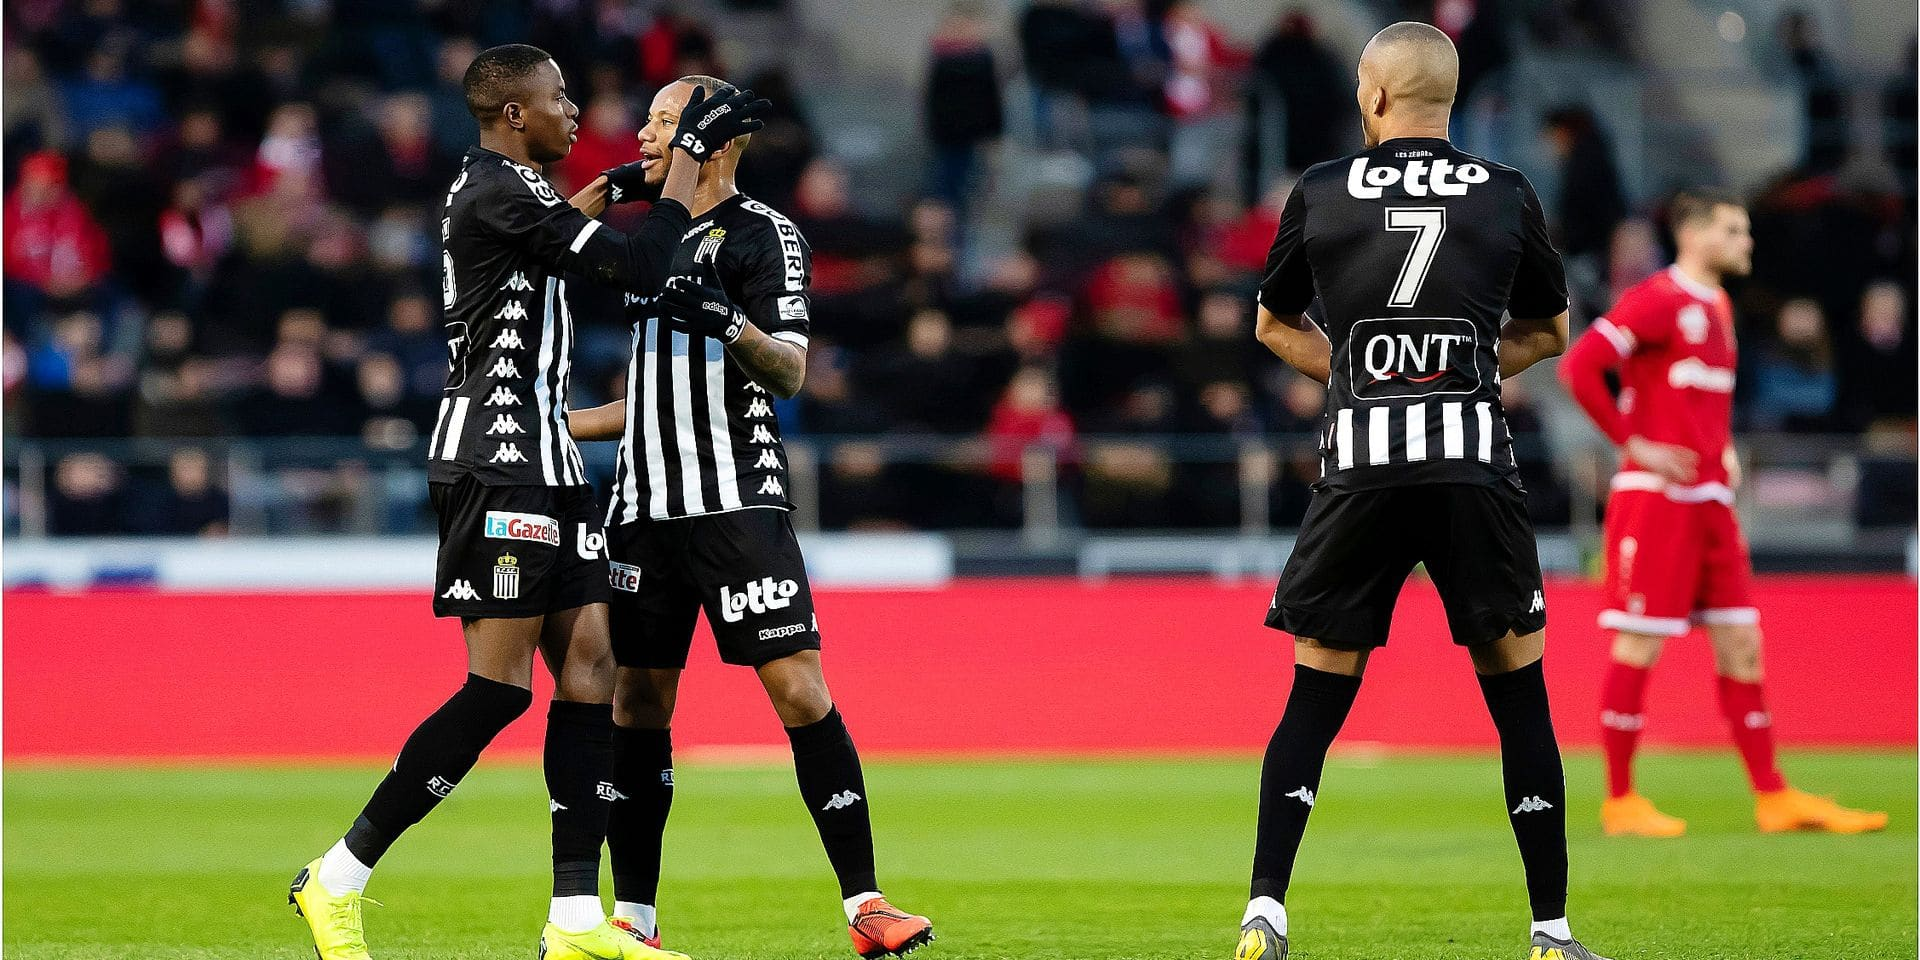 Charleroi's Victor Osimhen celebrates with teammates after scoring during a soccer match between Royal Antwerp FC and Sporting Charleroi, Sunday 10 March 2019 in Antwerp, on the 29th day of the 'Jupiler Pro League' Belgian soccer championship season 2018-2019. BELGA PHOTO KRISTOF VAN ACCOM